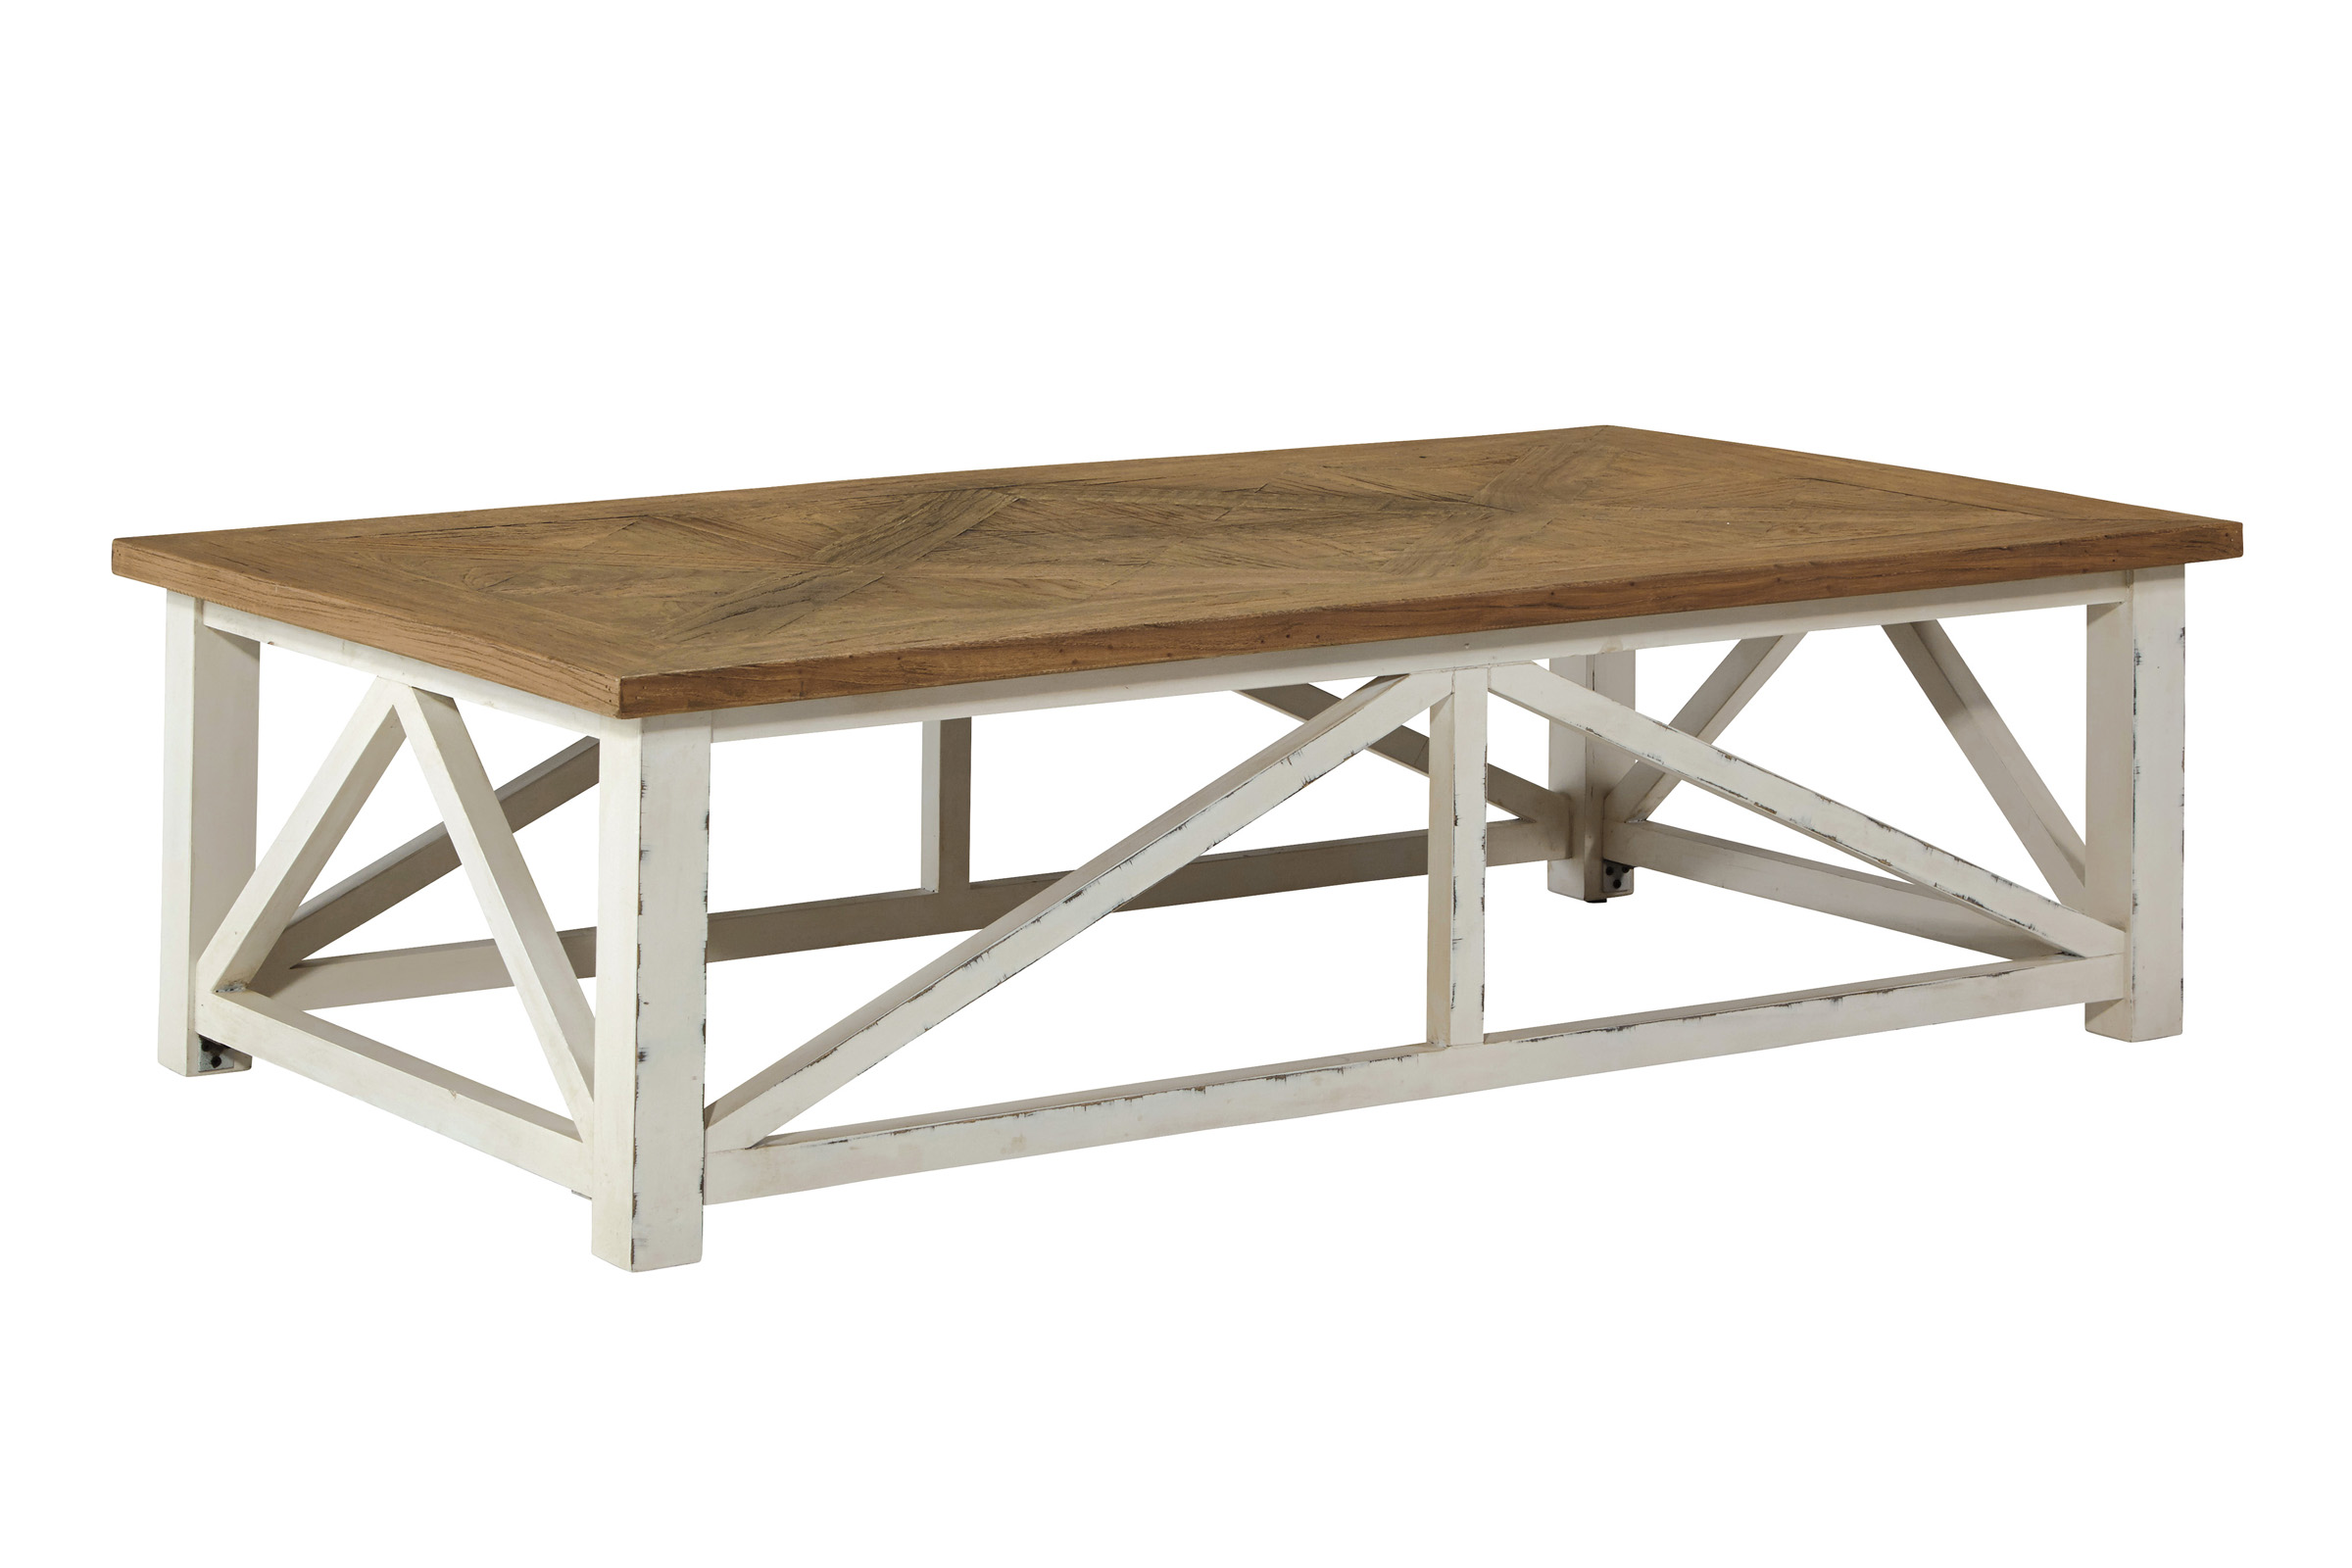 100 Ashley Cross Island Coffee Table Rectangular  : 62899 from 45.32.79.15 size 2400 x 1600 jpeg 368kB